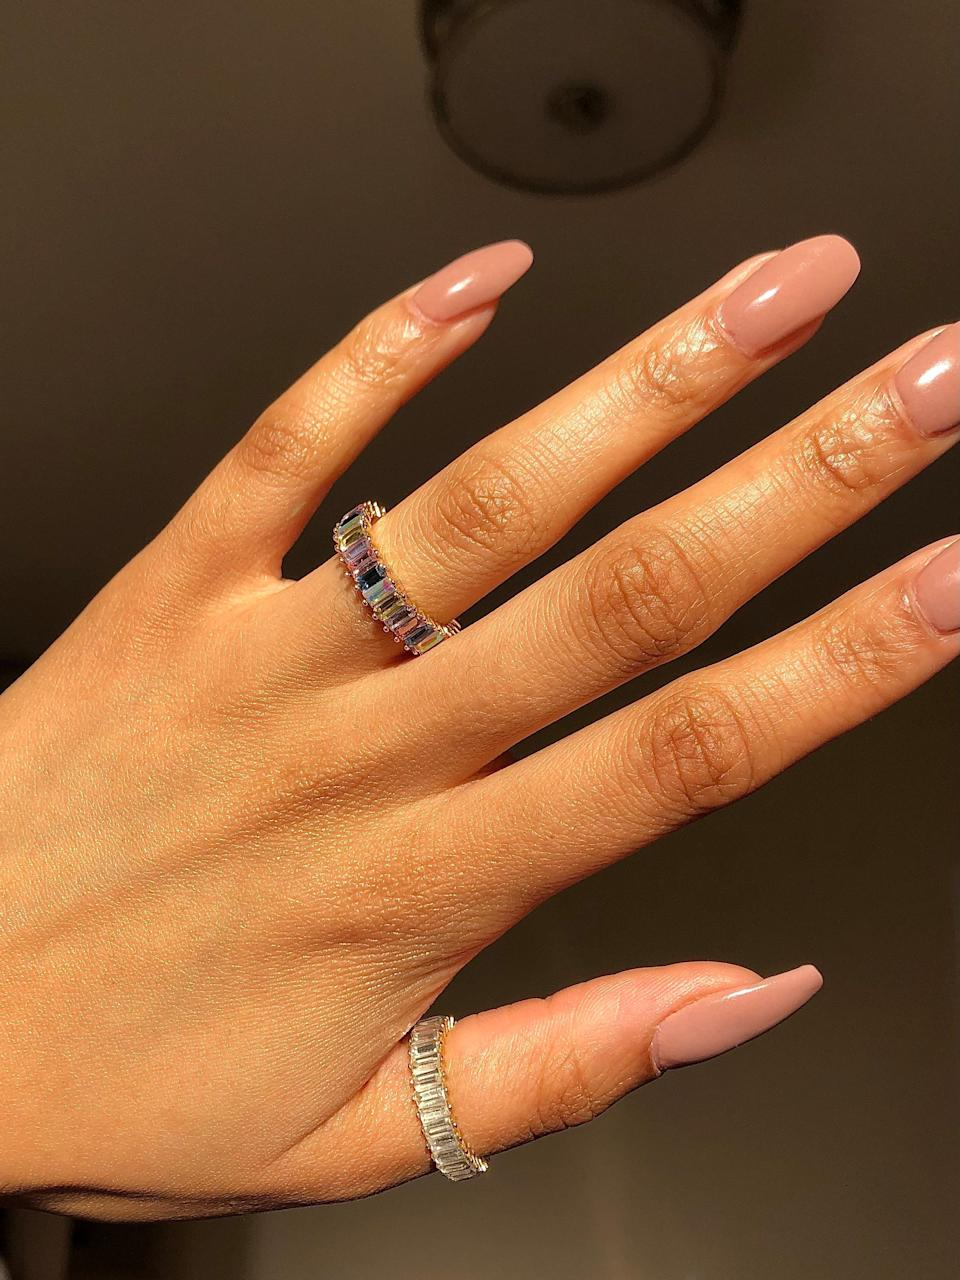 "<h2>Baublebar Alidia Ring</h2><br>""These rings had me feeling quite glam this month. They're the perfect amount chunky–– just small enough so it's not bothersome, but rest assured they will be seen sparkling in the light from a mile away. So far each ring has survived multiple hand washes, the occasional scrape, and a few accidental drops. They come in all kinds of colors and to be honest I would like another one."" <em>– Alexandra Polk, Lifestyle Writer</em><br><br><em>Shop <strong><a href=""https://www.baublebar.com/product/56185-mini-alidia-cubic-zirconia-ring"" rel=""nofollow noopener"" target=""_blank"" data-ylk=""slk:Baublebar"" class=""link rapid-noclick-resp"">Baublebar</a></strong></em><br><br><strong>BaubleBar</strong> Mini Alidia Cubic Zirconia Ring, $, available at <a href=""https://go.skimresources.com/?id=30283X879131&url=https%3A%2F%2Fwww.baublebar.com%2Fproduct%2F56185-mini-alidia-cubic-zirconia-ring"" rel=""nofollow noopener"" target=""_blank"" data-ylk=""slk:BaubleBar"" class=""link rapid-noclick-resp"">BaubleBar</a>"